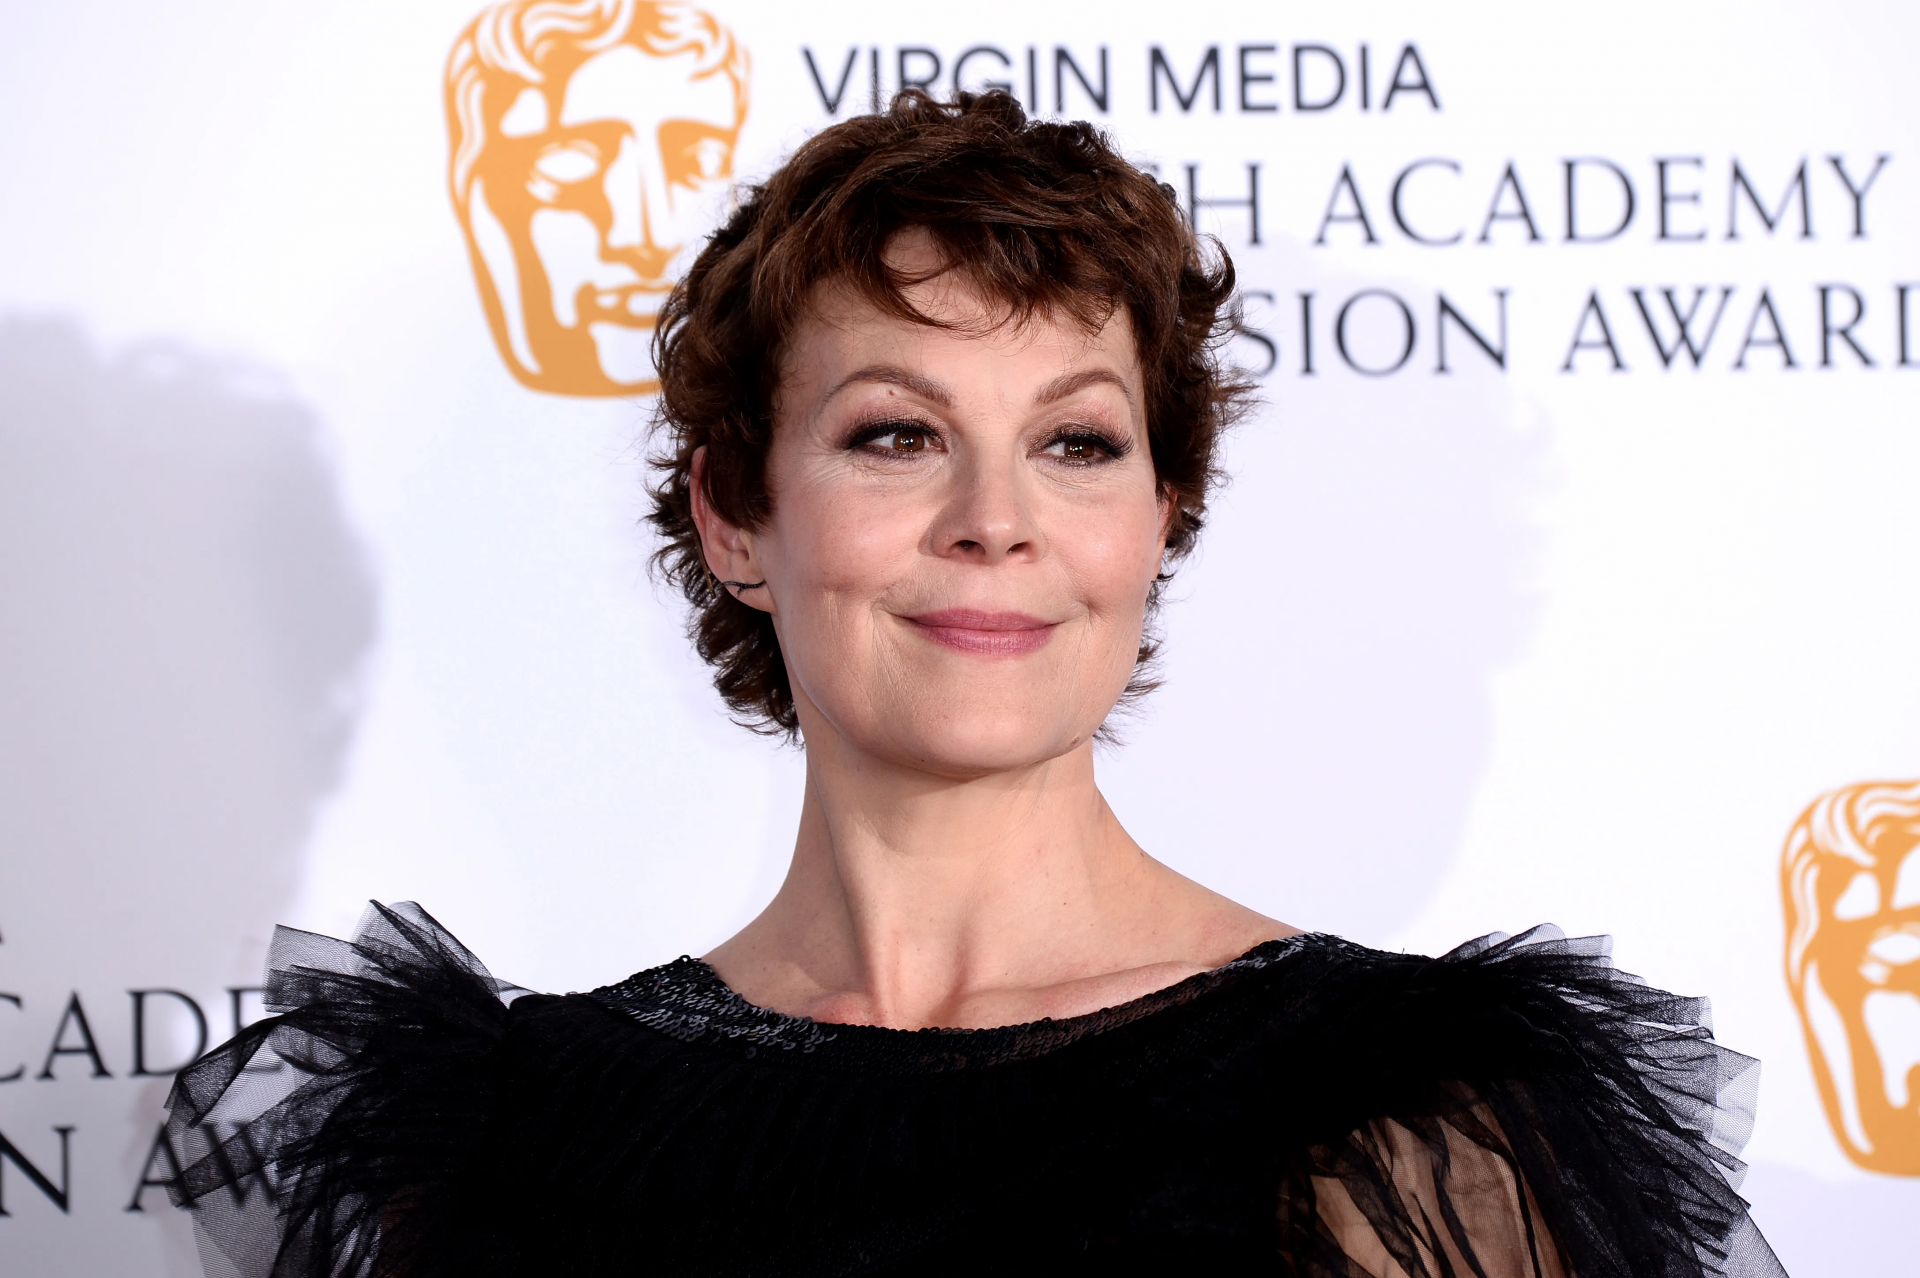 Who is Helen McCrory: Bio, Acting Career, Personal Life